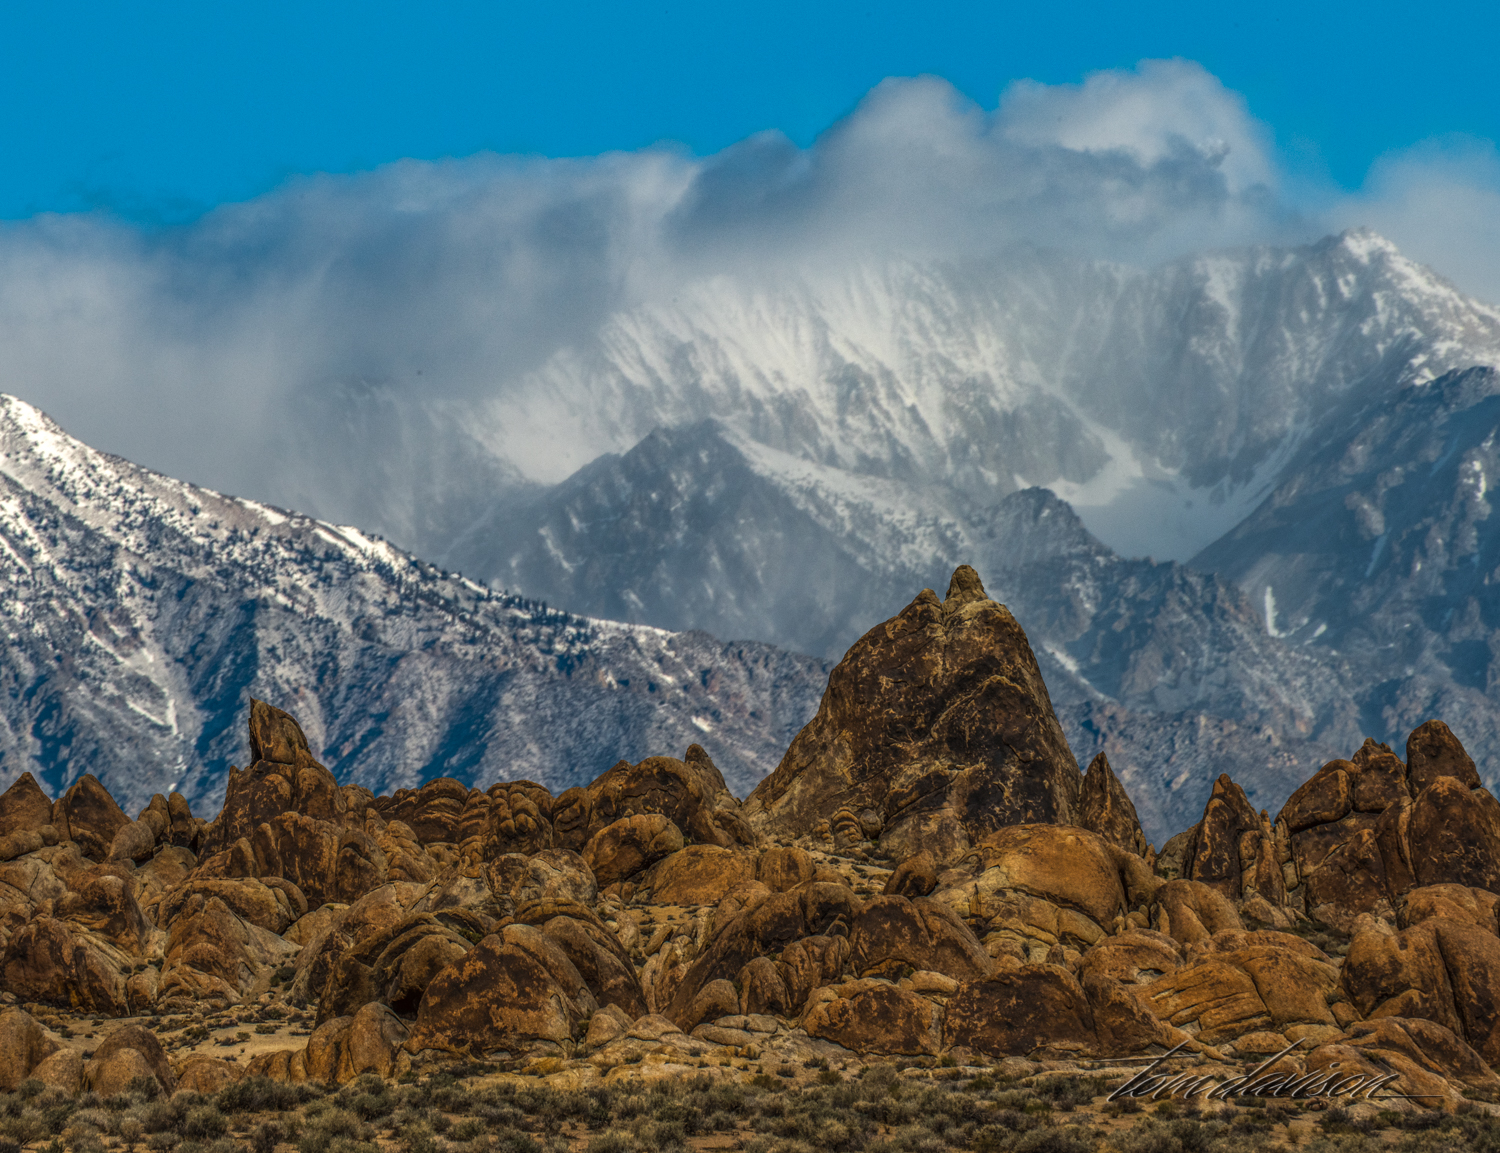 The Sierra as viewed from Alabama Hills.